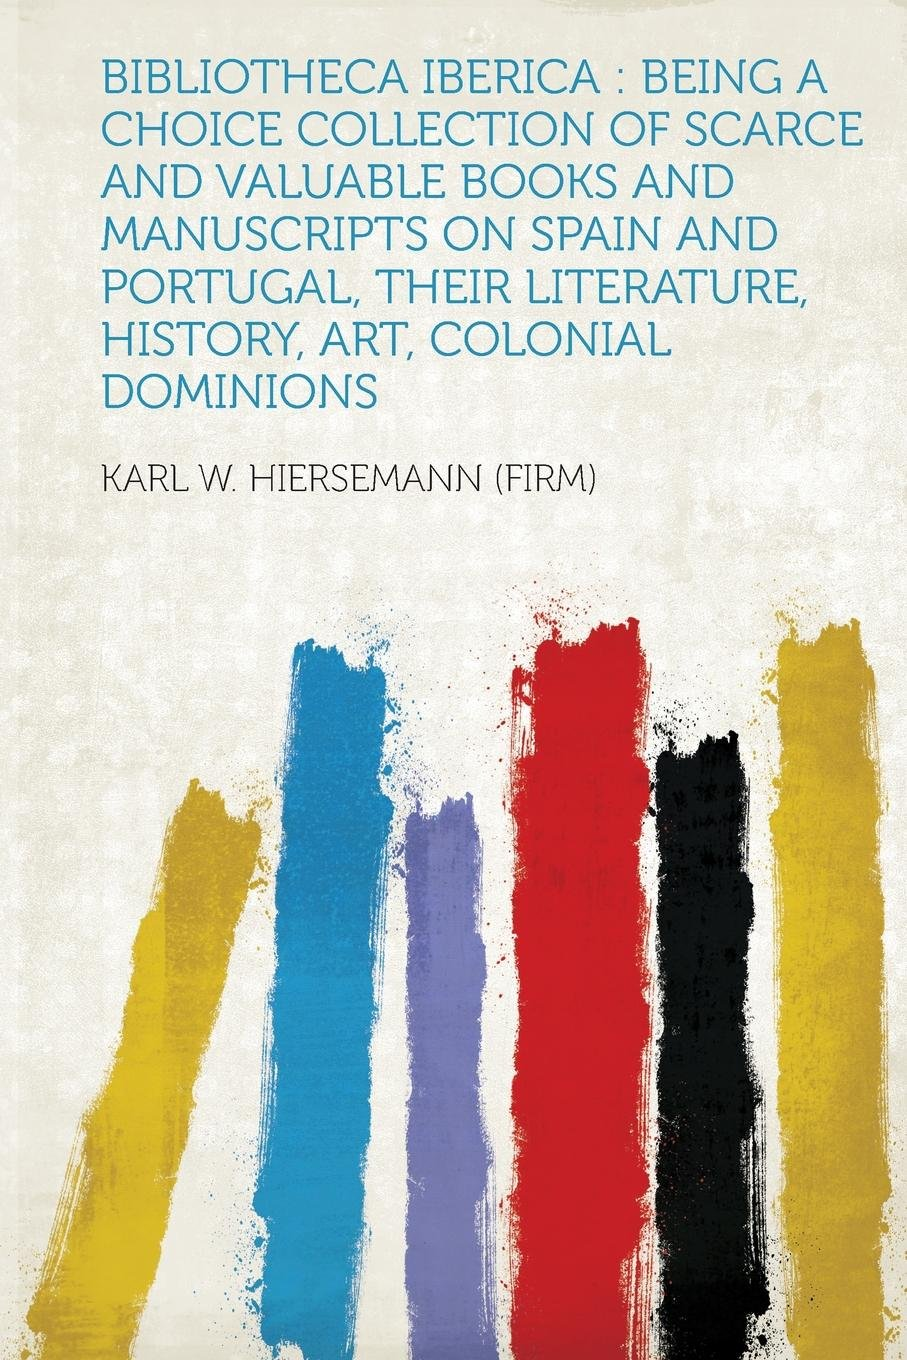 Download Bibliotheca Iberica: Being a Choice Collection of Scarce and Valuable Books and Manuscripts on Spain and Portugal, Their Literature, History, Art, Colonial Dominions pdf